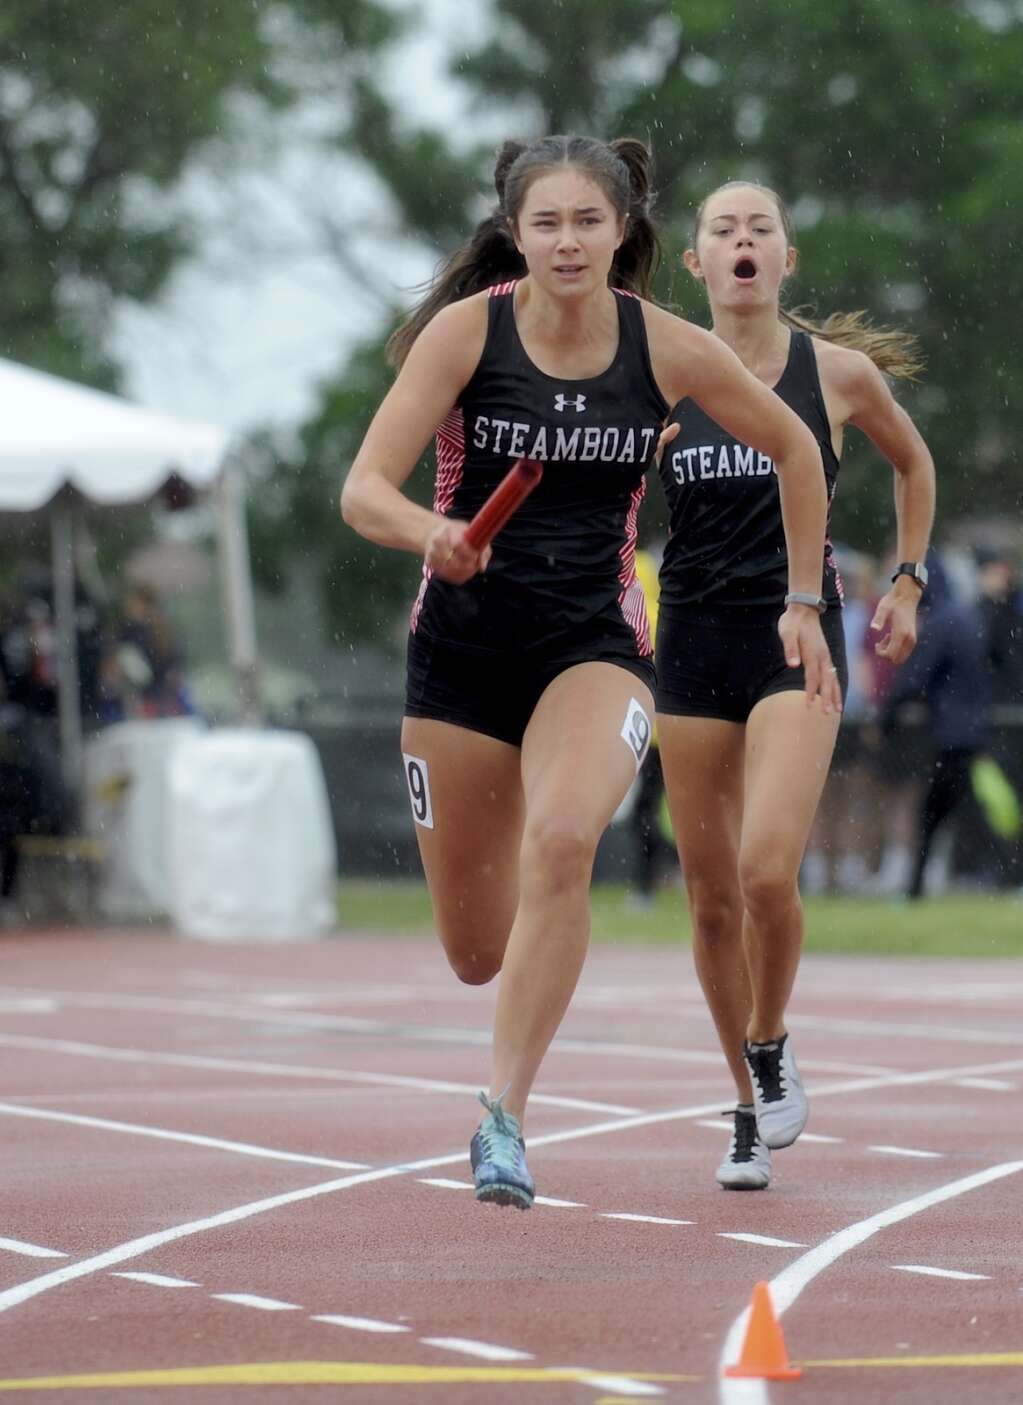 Steamboat Springs senior Aliyah Reimer takes off as the anchor leg of the girls 4x100 as junior Kelsey Hamilton yells encouragements at the CHSAA State Track and Field Championships at JeffCo Stadium on Saturday. (Photo by Shelby Reardon)